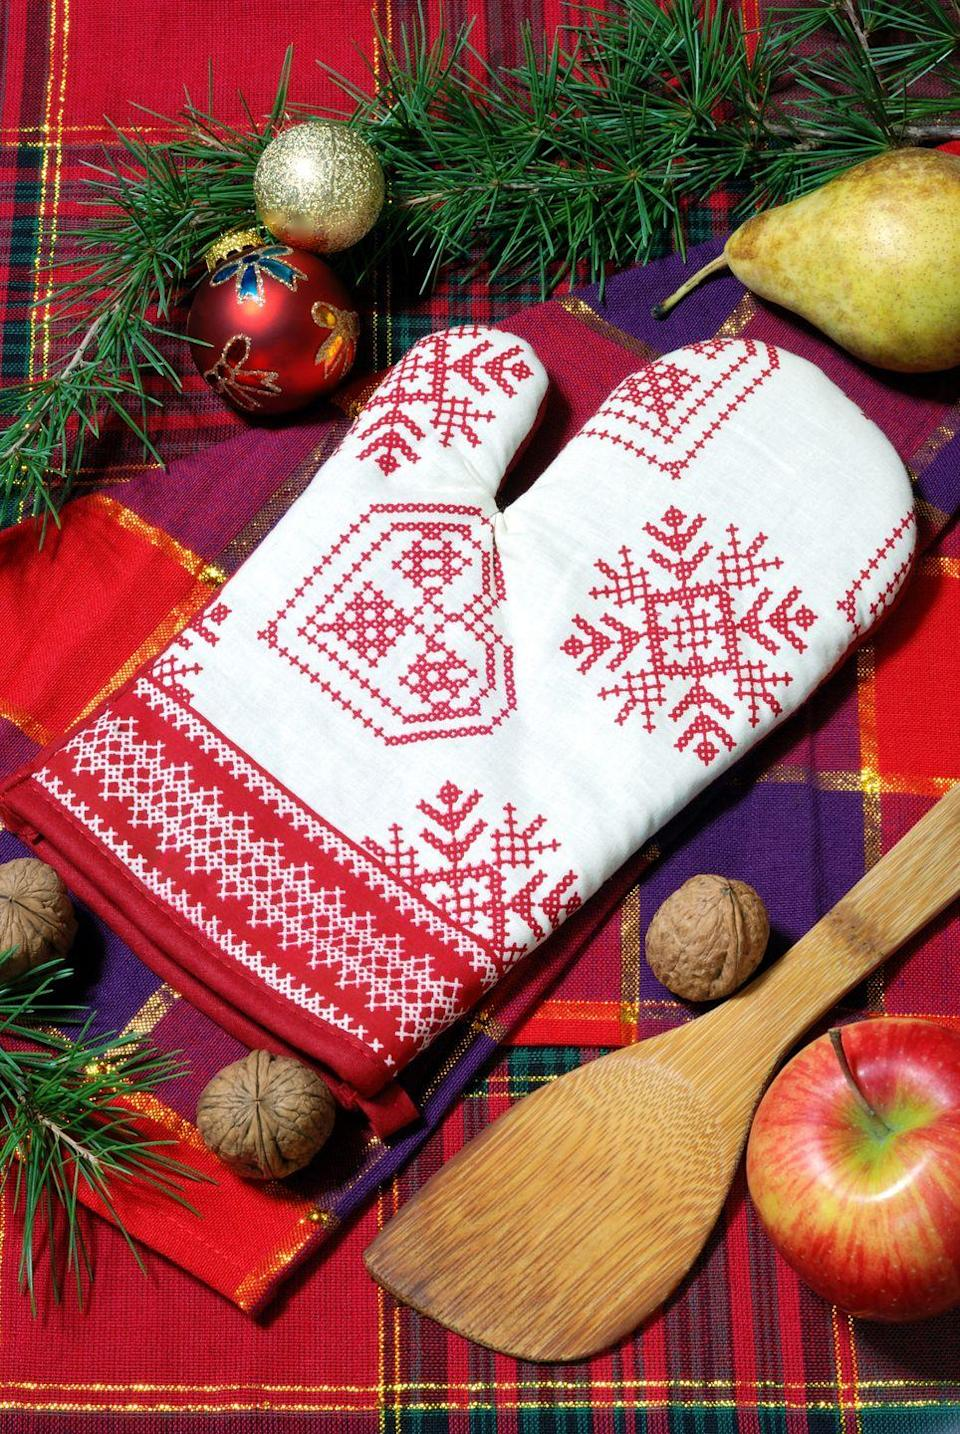 "<p>Have you ever tried opening <a href=""https://www.goodhousekeeping.com/holiday-gift-ideas/"" rel=""nofollow noopener"" target=""_blank"" data-ylk=""slk:Christmas gifts"" class=""link rapid-noclick-resp"">Christmas gifts</a> while wearing oven mitts? Get ready to giggle, because it's just as hard as you expect and often has hysterical results. Besides, it will make your kids slow down and savor the moment when opening presents on Christmas morning — that's what we call a win-win. </p><p><em><a href=""http://rko-ideas-galore.blogspot.com/2010/12/merry-christmitts-game.html"" rel=""nofollow noopener"" target=""_blank"" data-ylk=""slk:Get the tutorial from Karen's Ideas Galore »"" class=""link rapid-noclick-resp"">Get the tutorial from Karen's Ideas Galore »</a></em></p>"